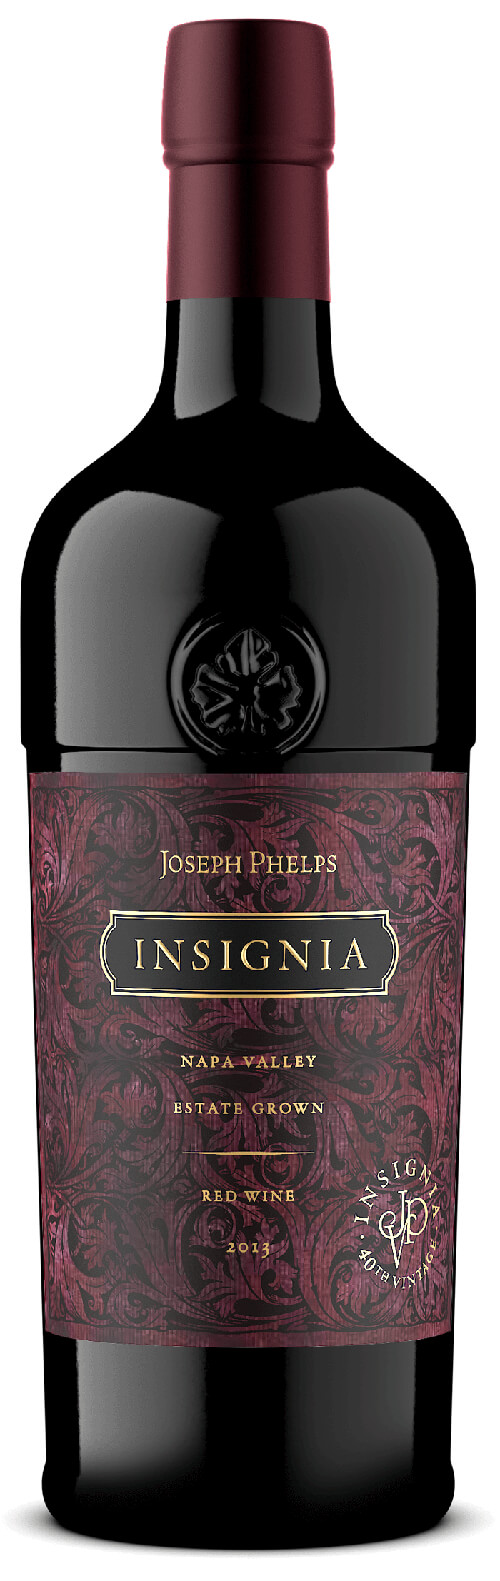 OUTSHINERY-JosephPhelps-Insignia-forWeb.jpg